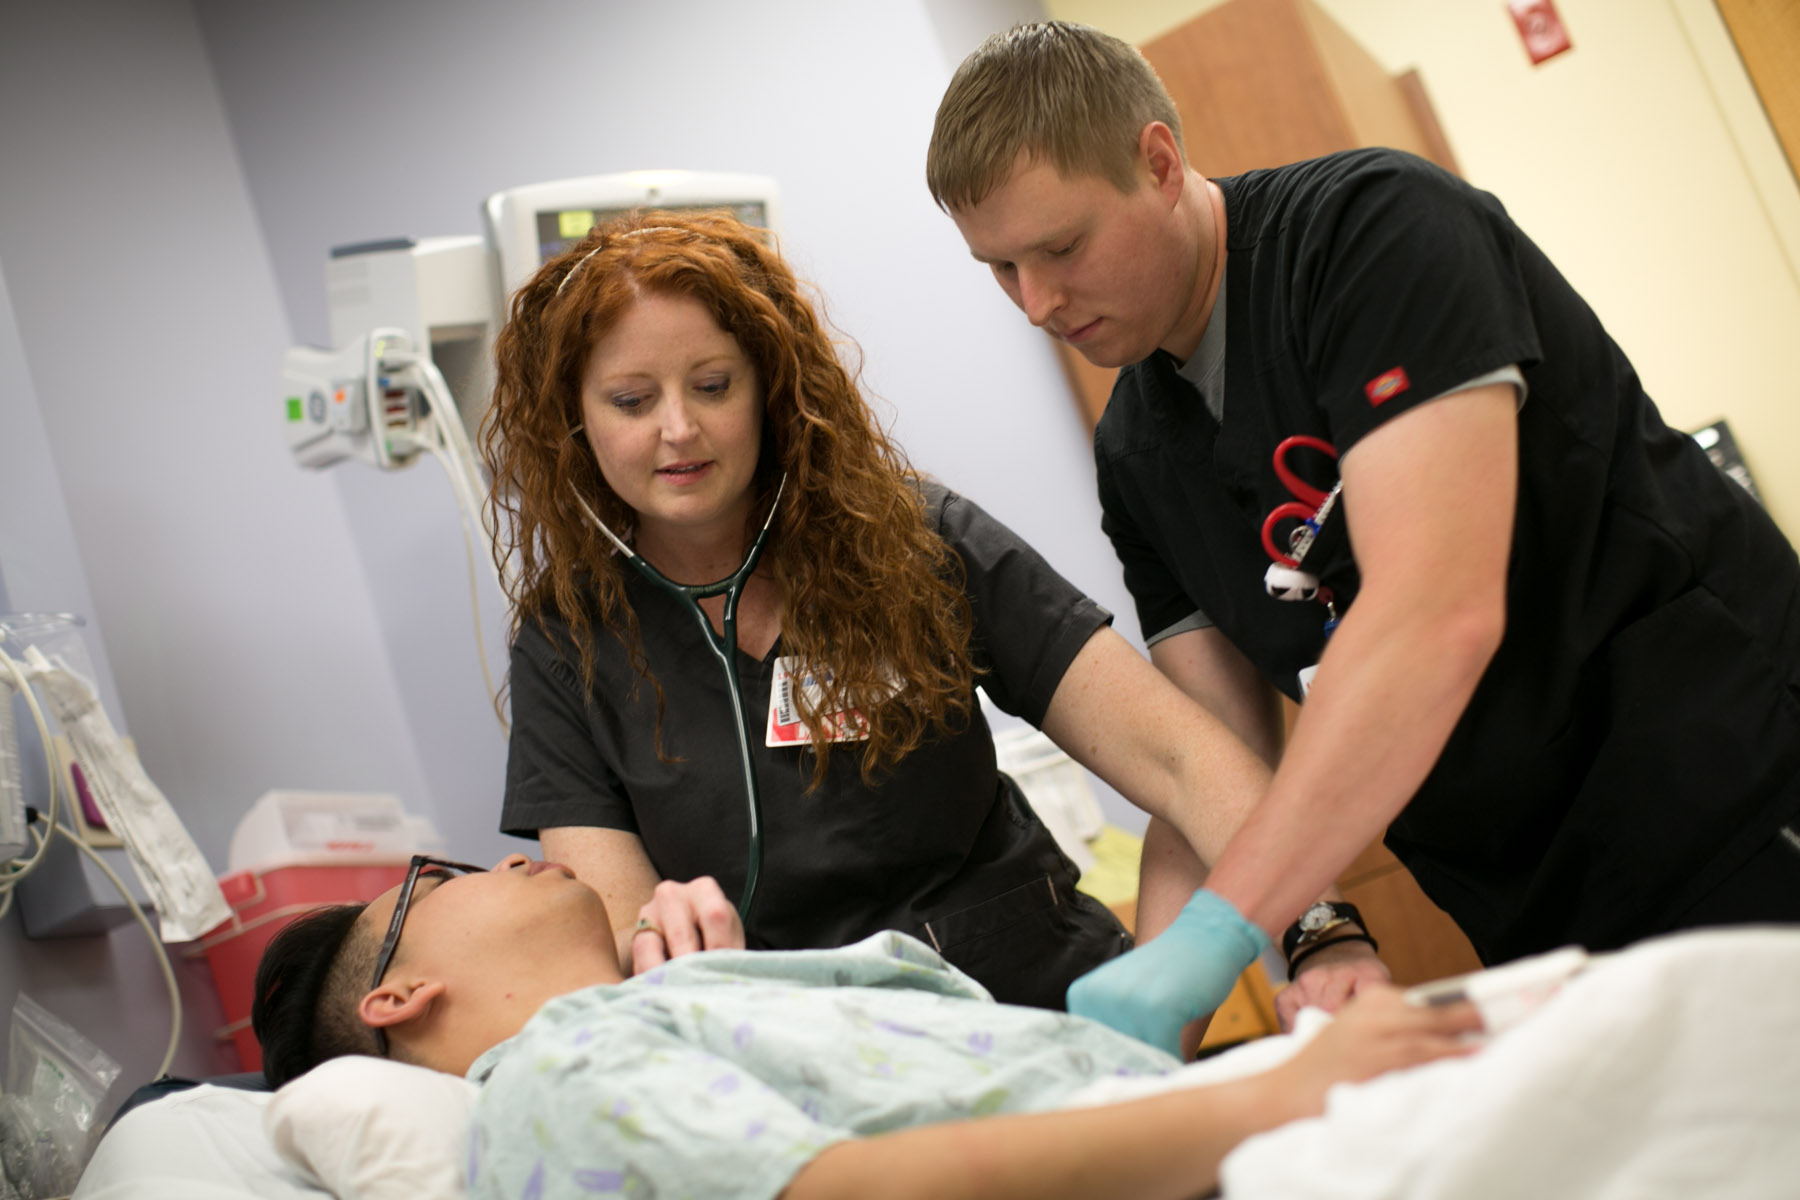 Busy Er Nurse Earns Bsn Online In Less Than A Year Uw